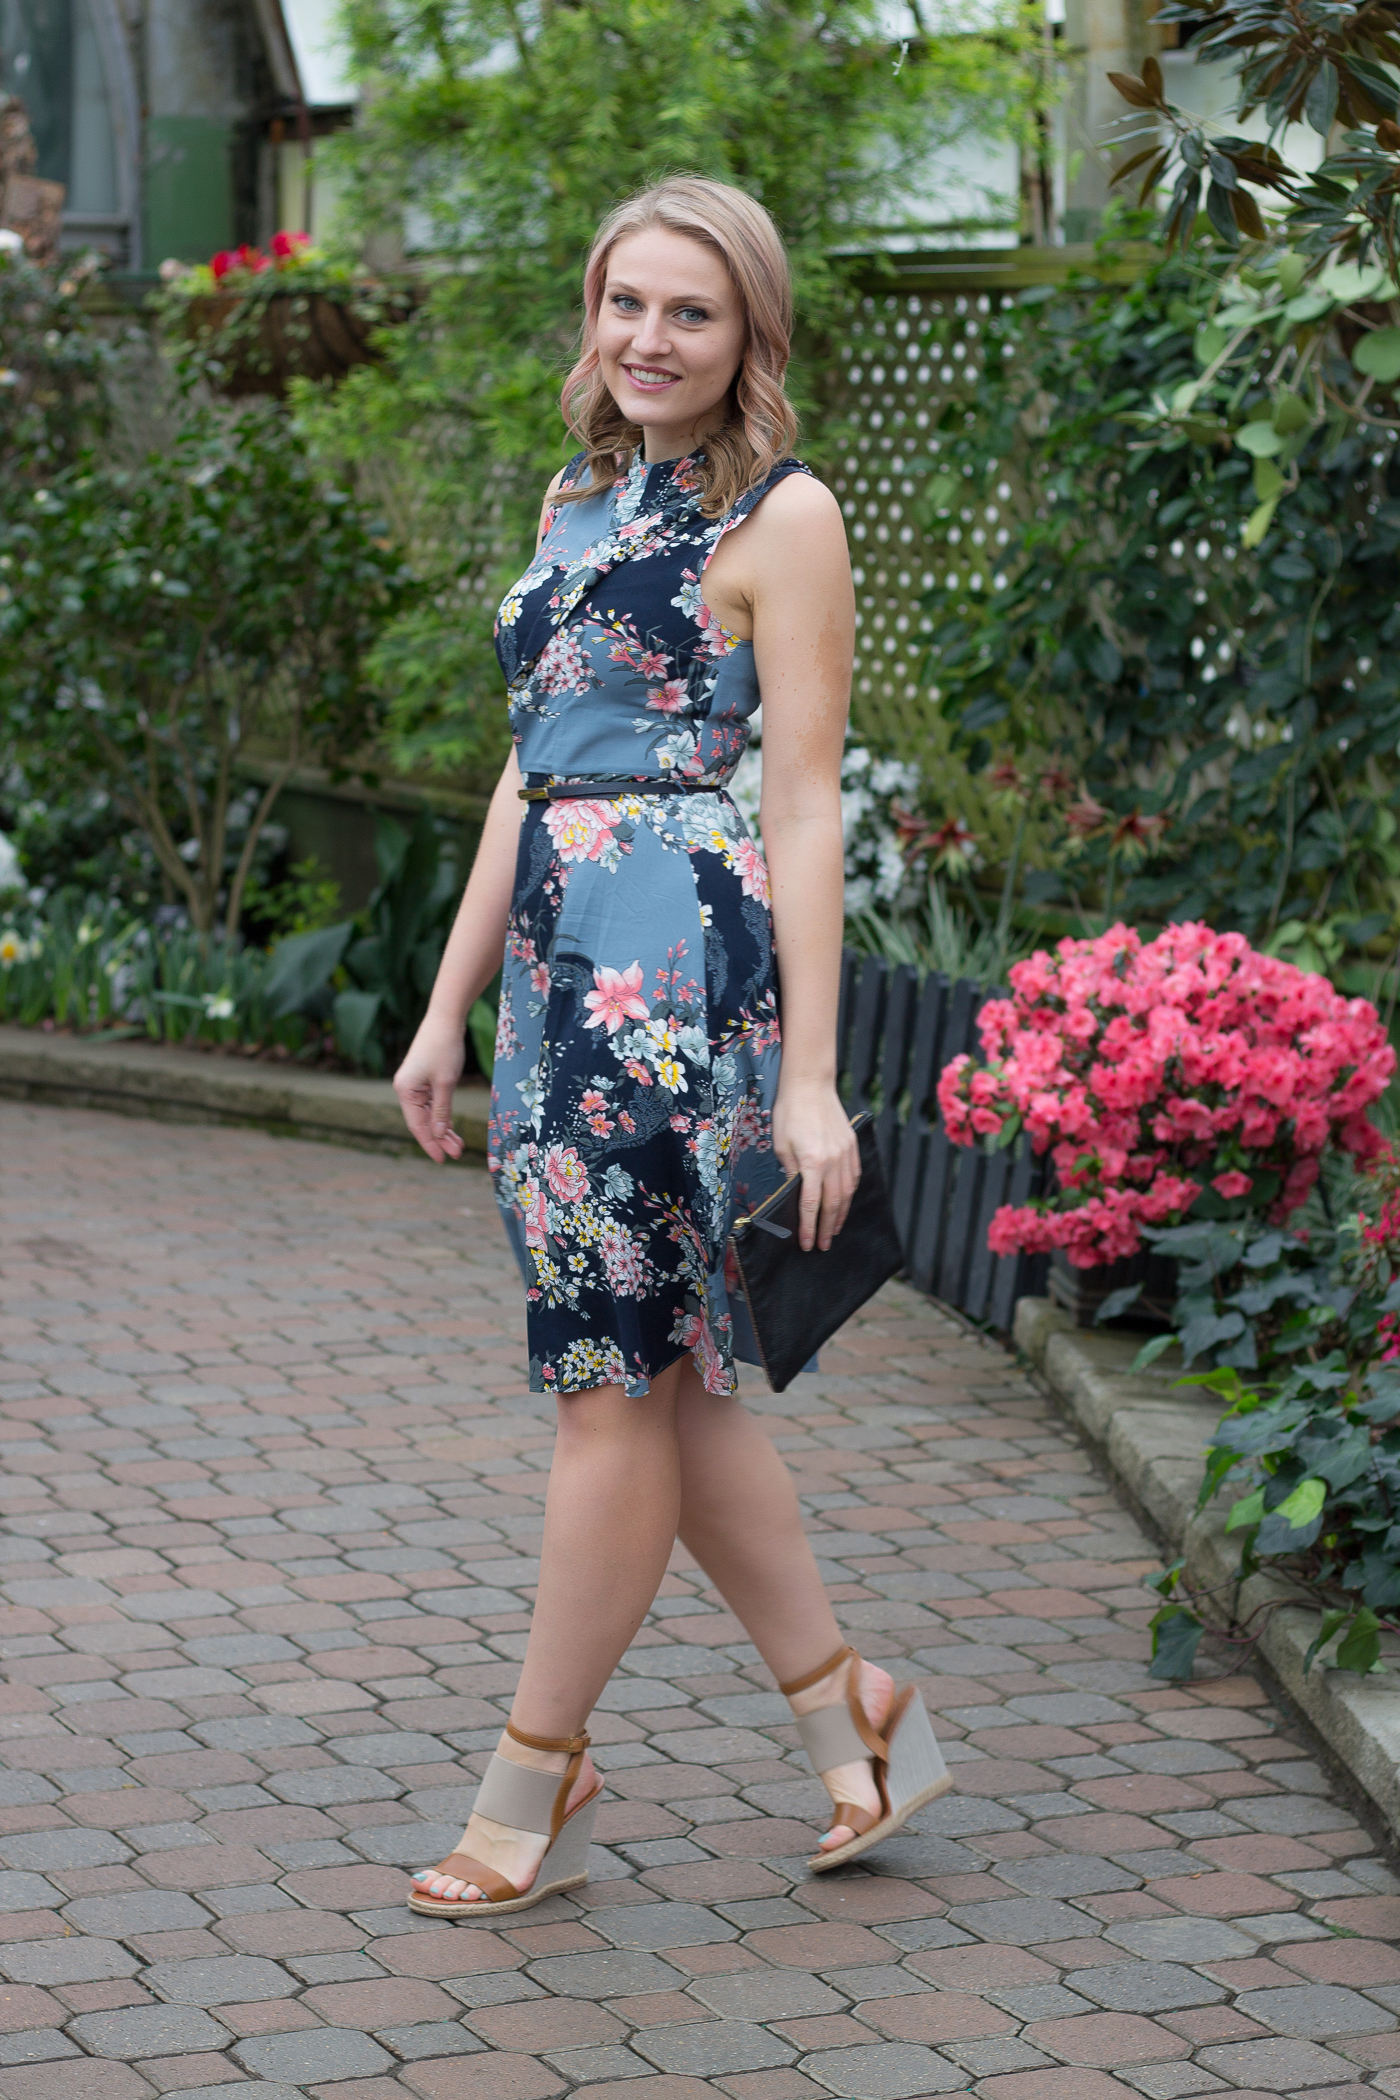 The perfect dark floral dress for spring season